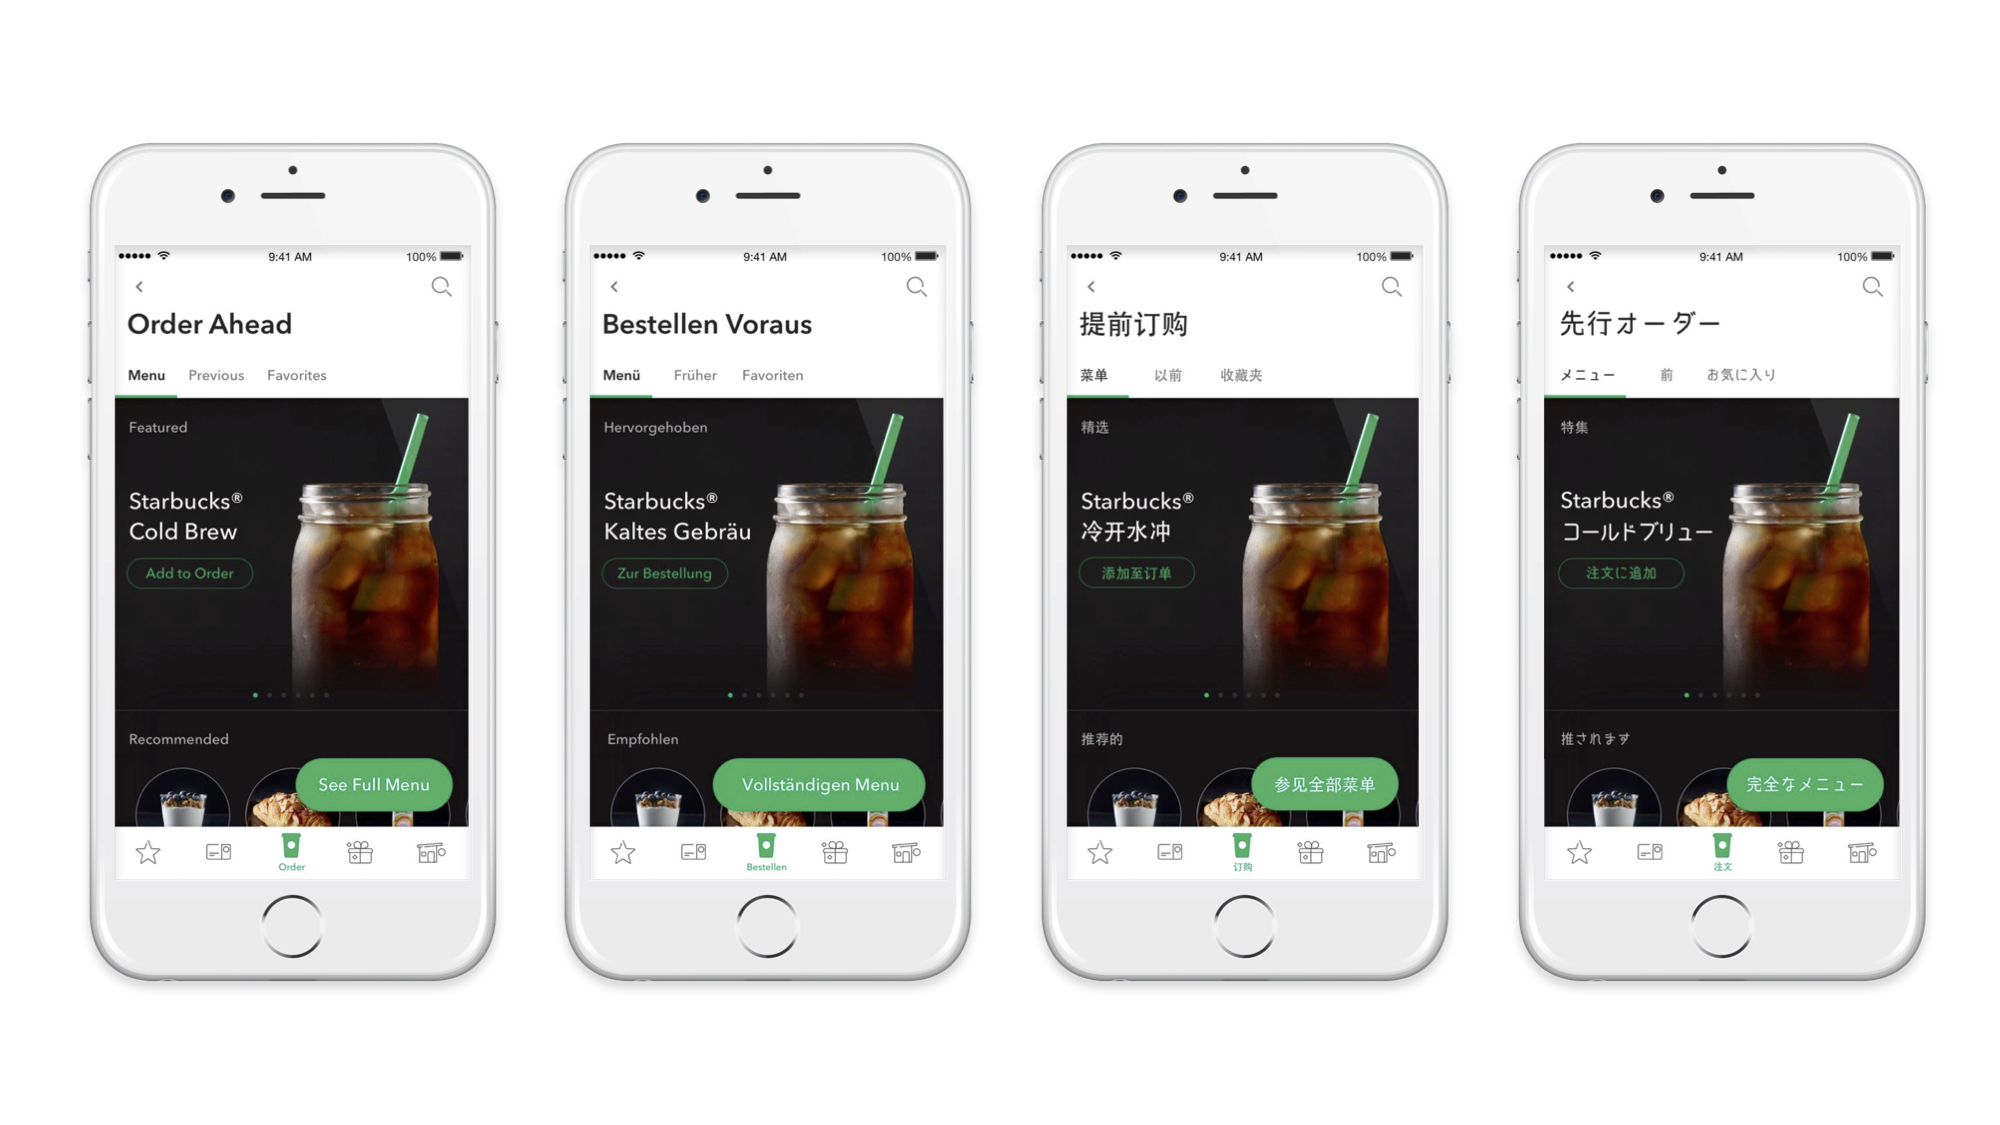 Image of Starbucks mobile app in different languages.